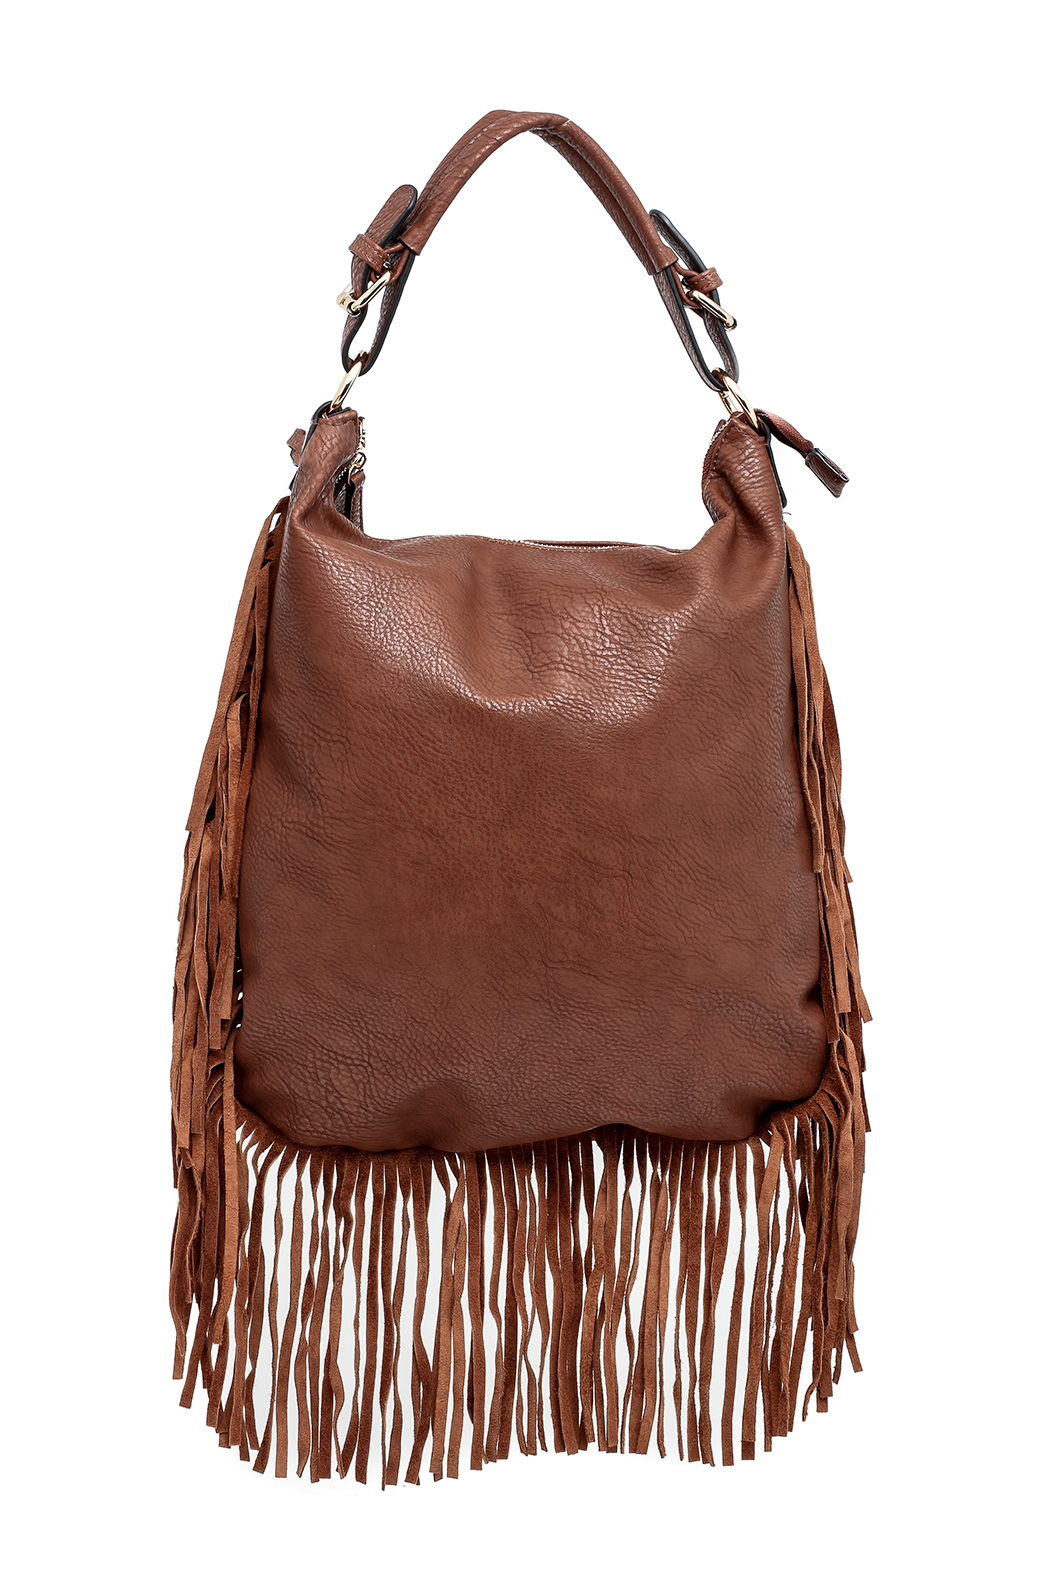 Moda Luxe Fringed Cognac Bag - Main Image